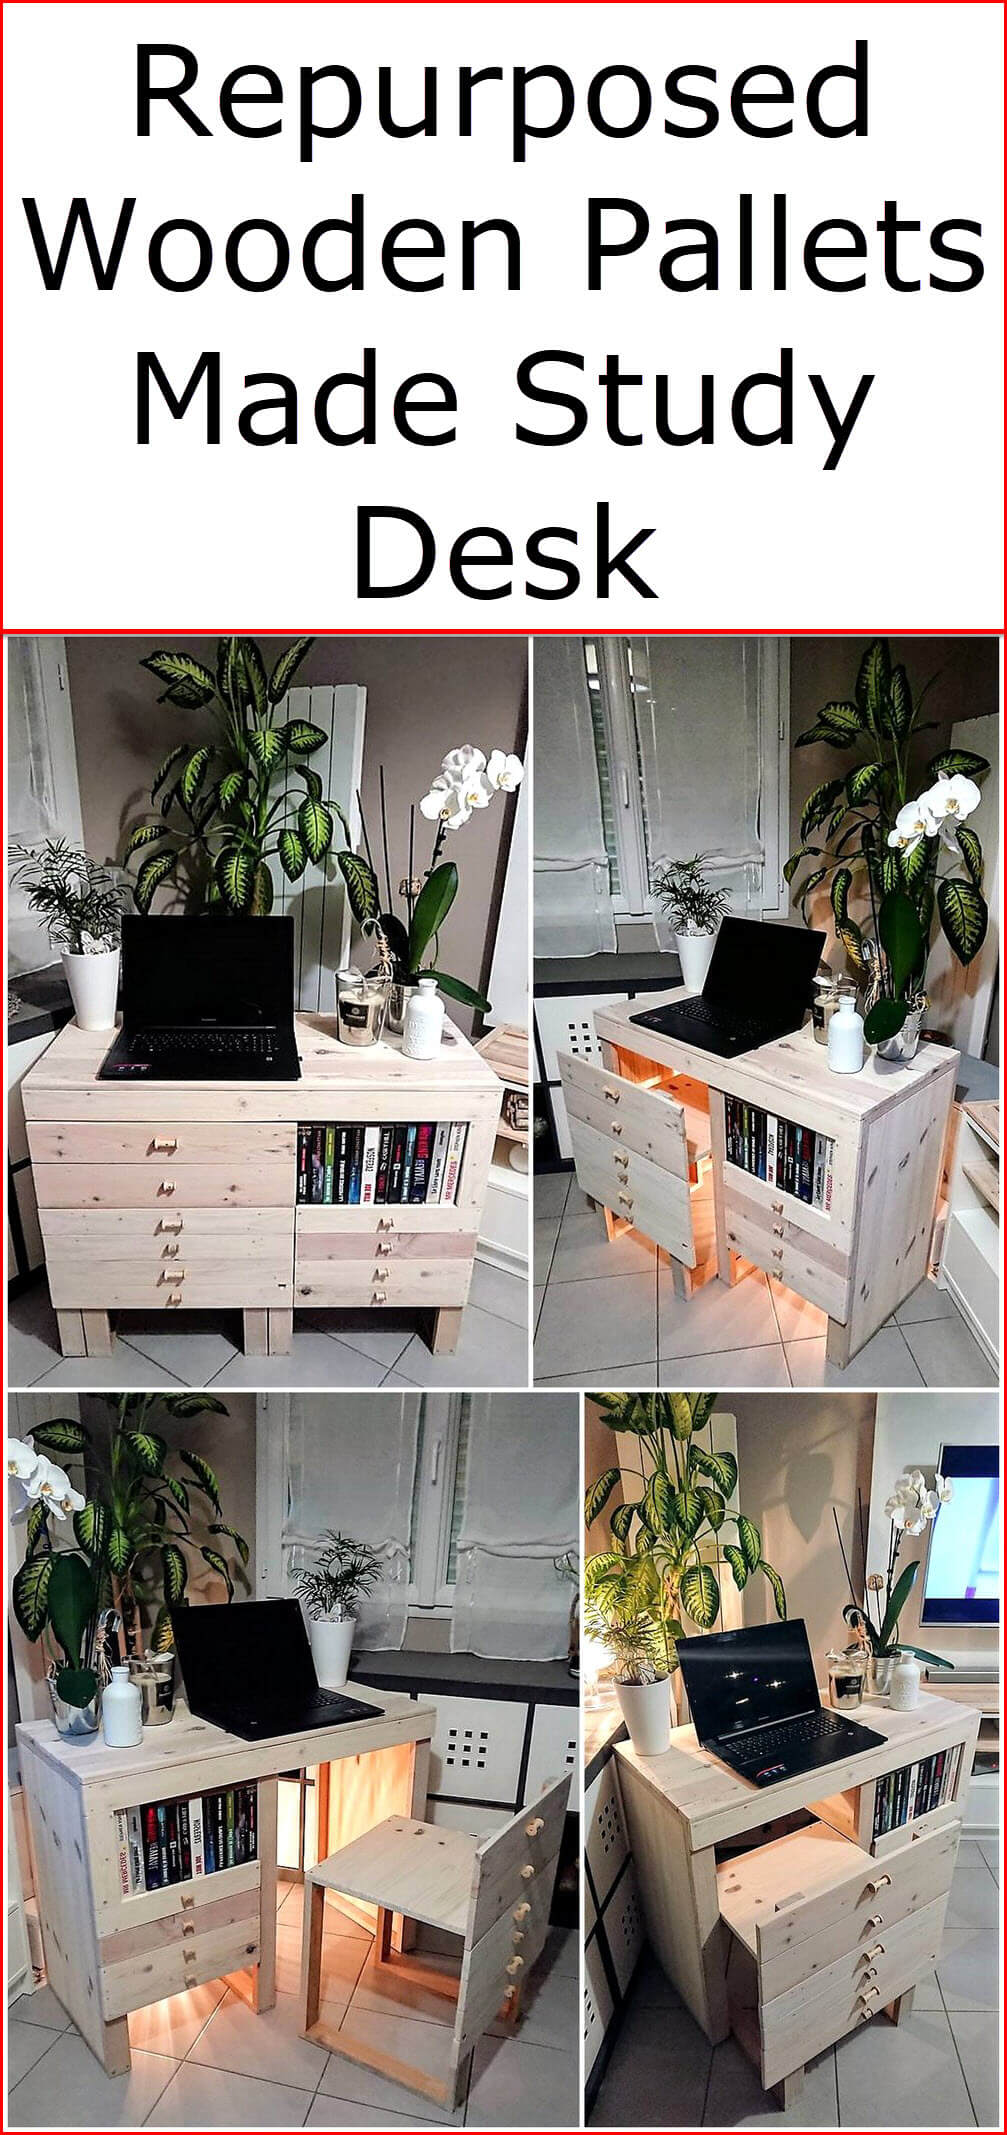 Repurposed Wooden Pallets Made Study Desk